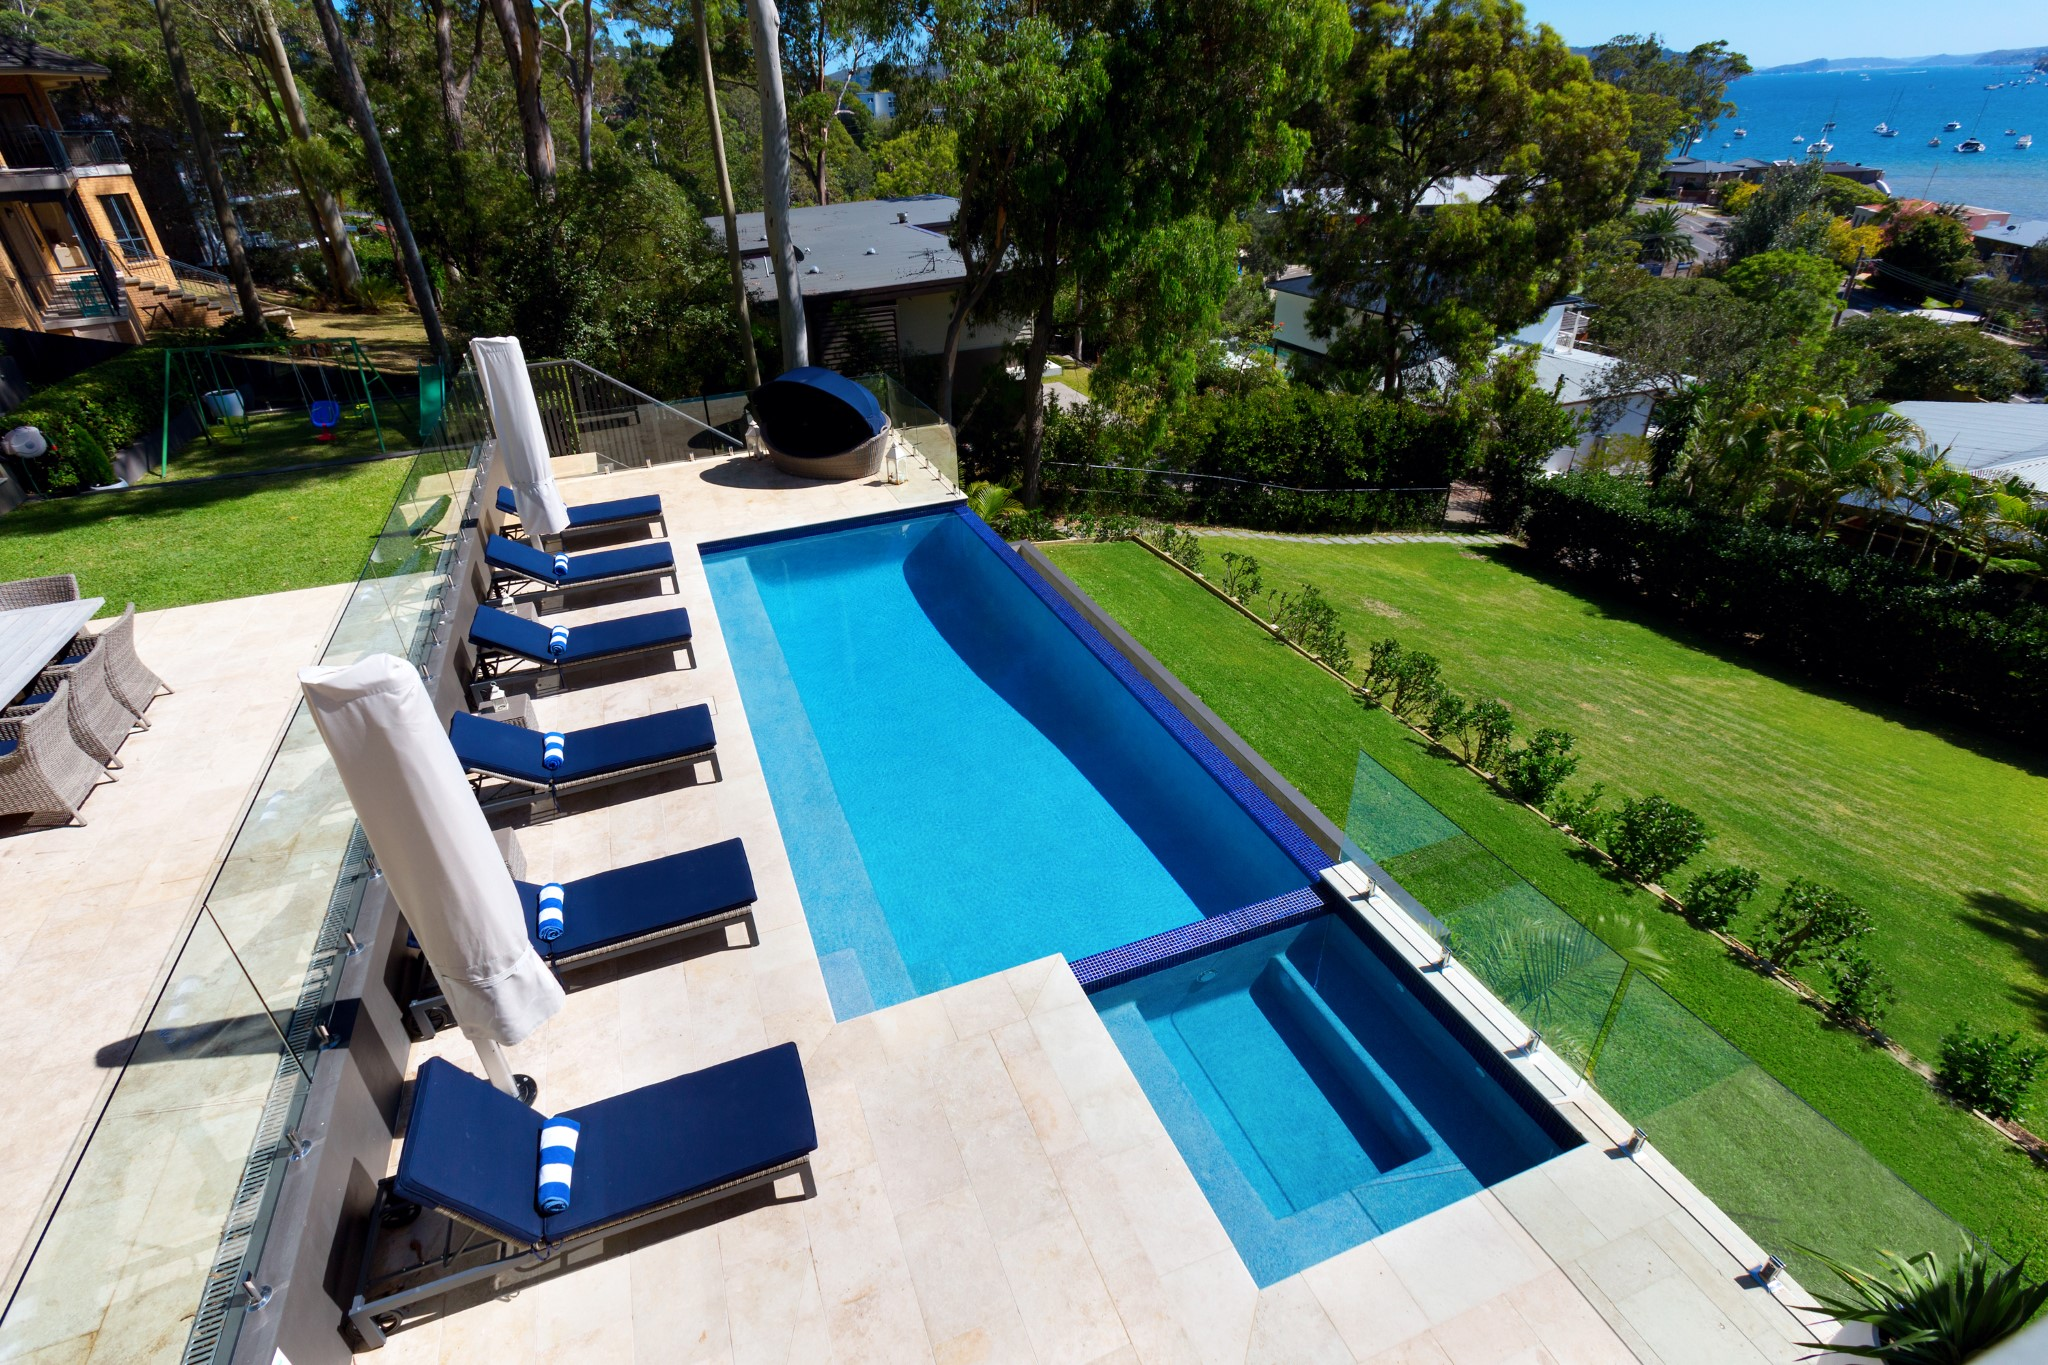 Classic Design of small and large swimming pools in front of the spectacular view